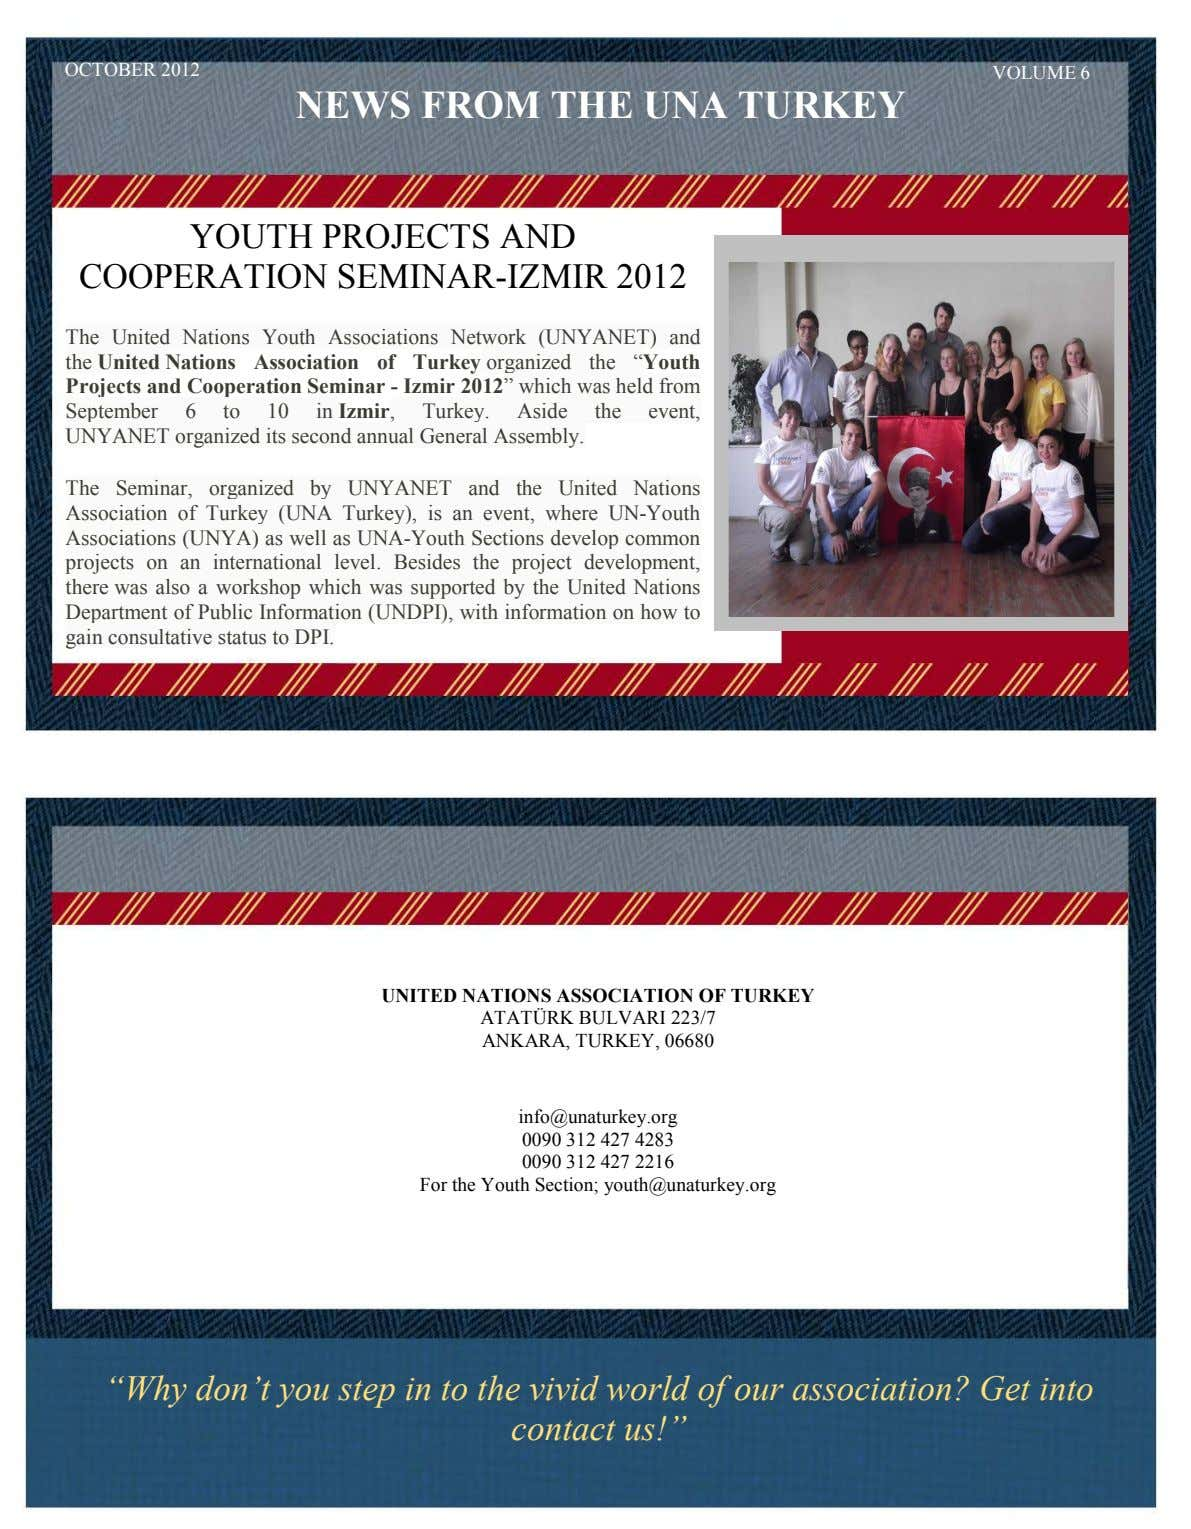 OCTOBER 2012 VOLUME 6 NEWS FROM THE UNA TURKEY YOUTH PROJECTS AND COOPERATION SEMINAR-IZMIR 2012